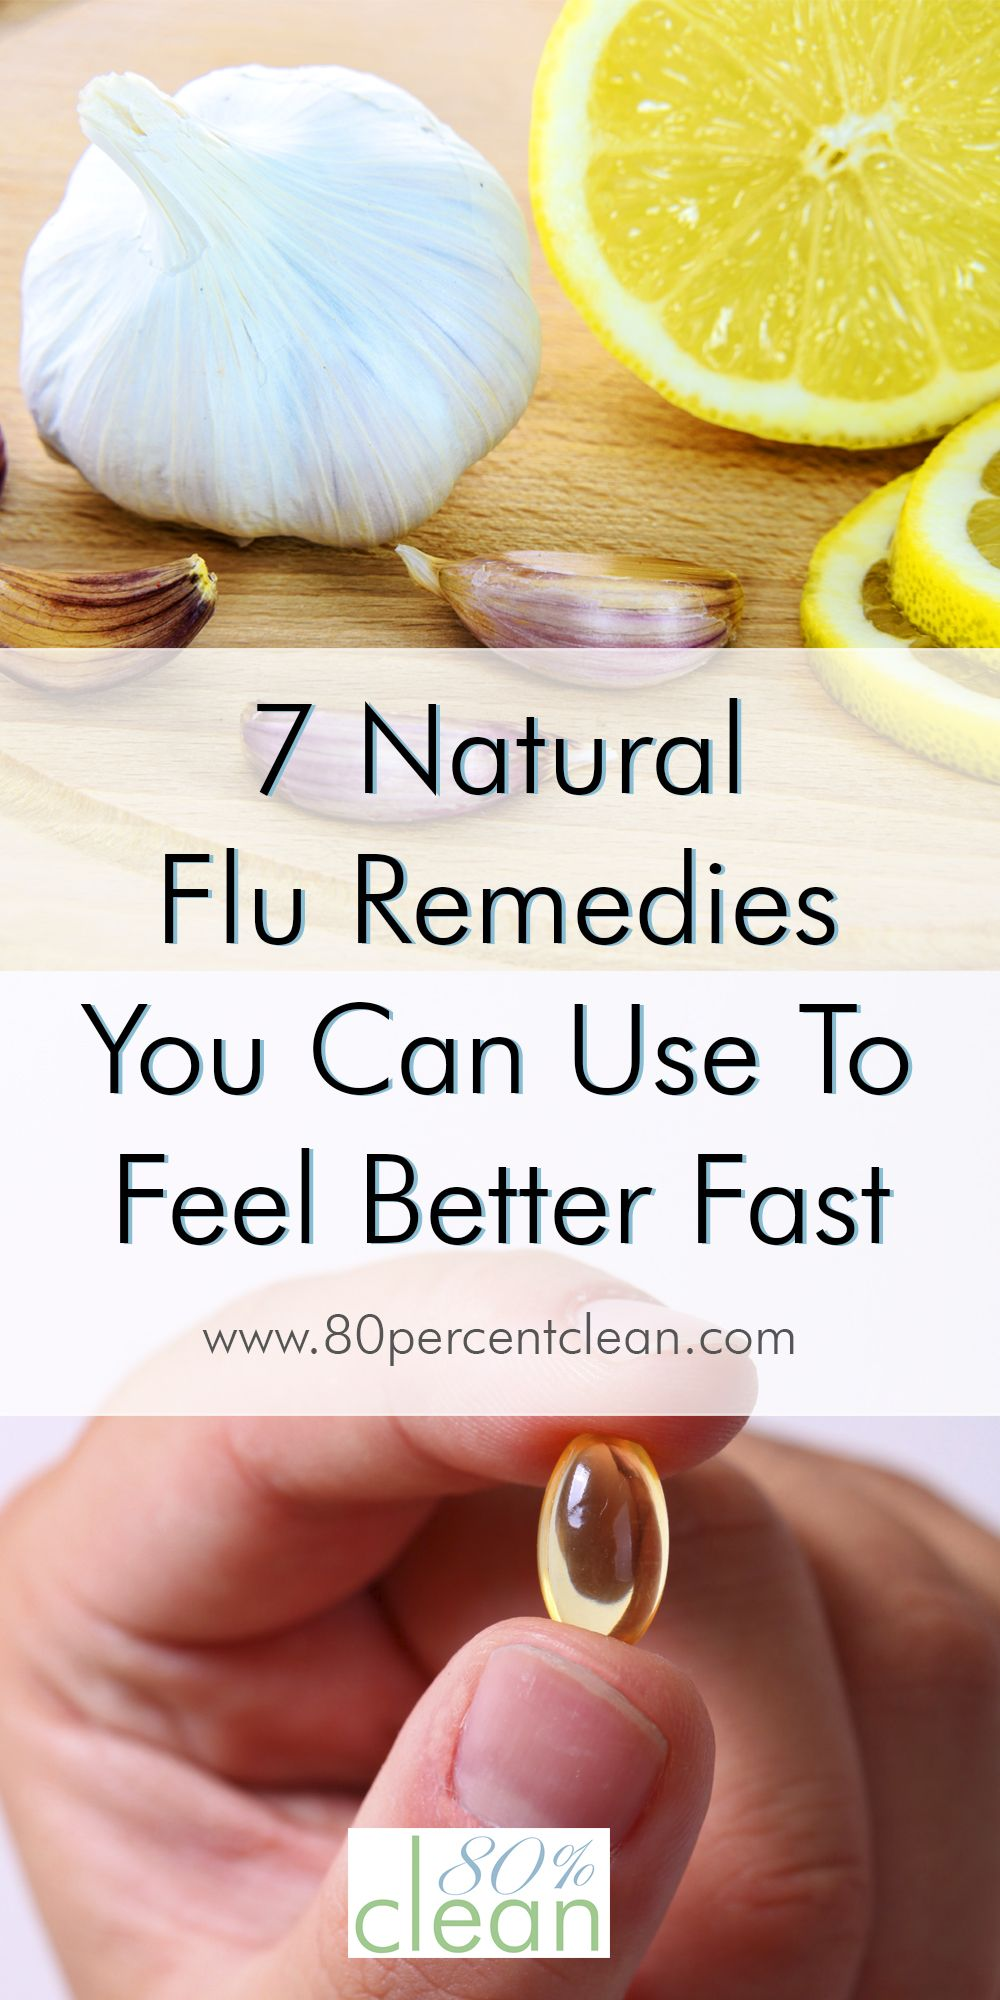 Hate getting the flu? Wish you could fight the flu naturally? Try out these 7 natural flu remedies to start feeling better fast.